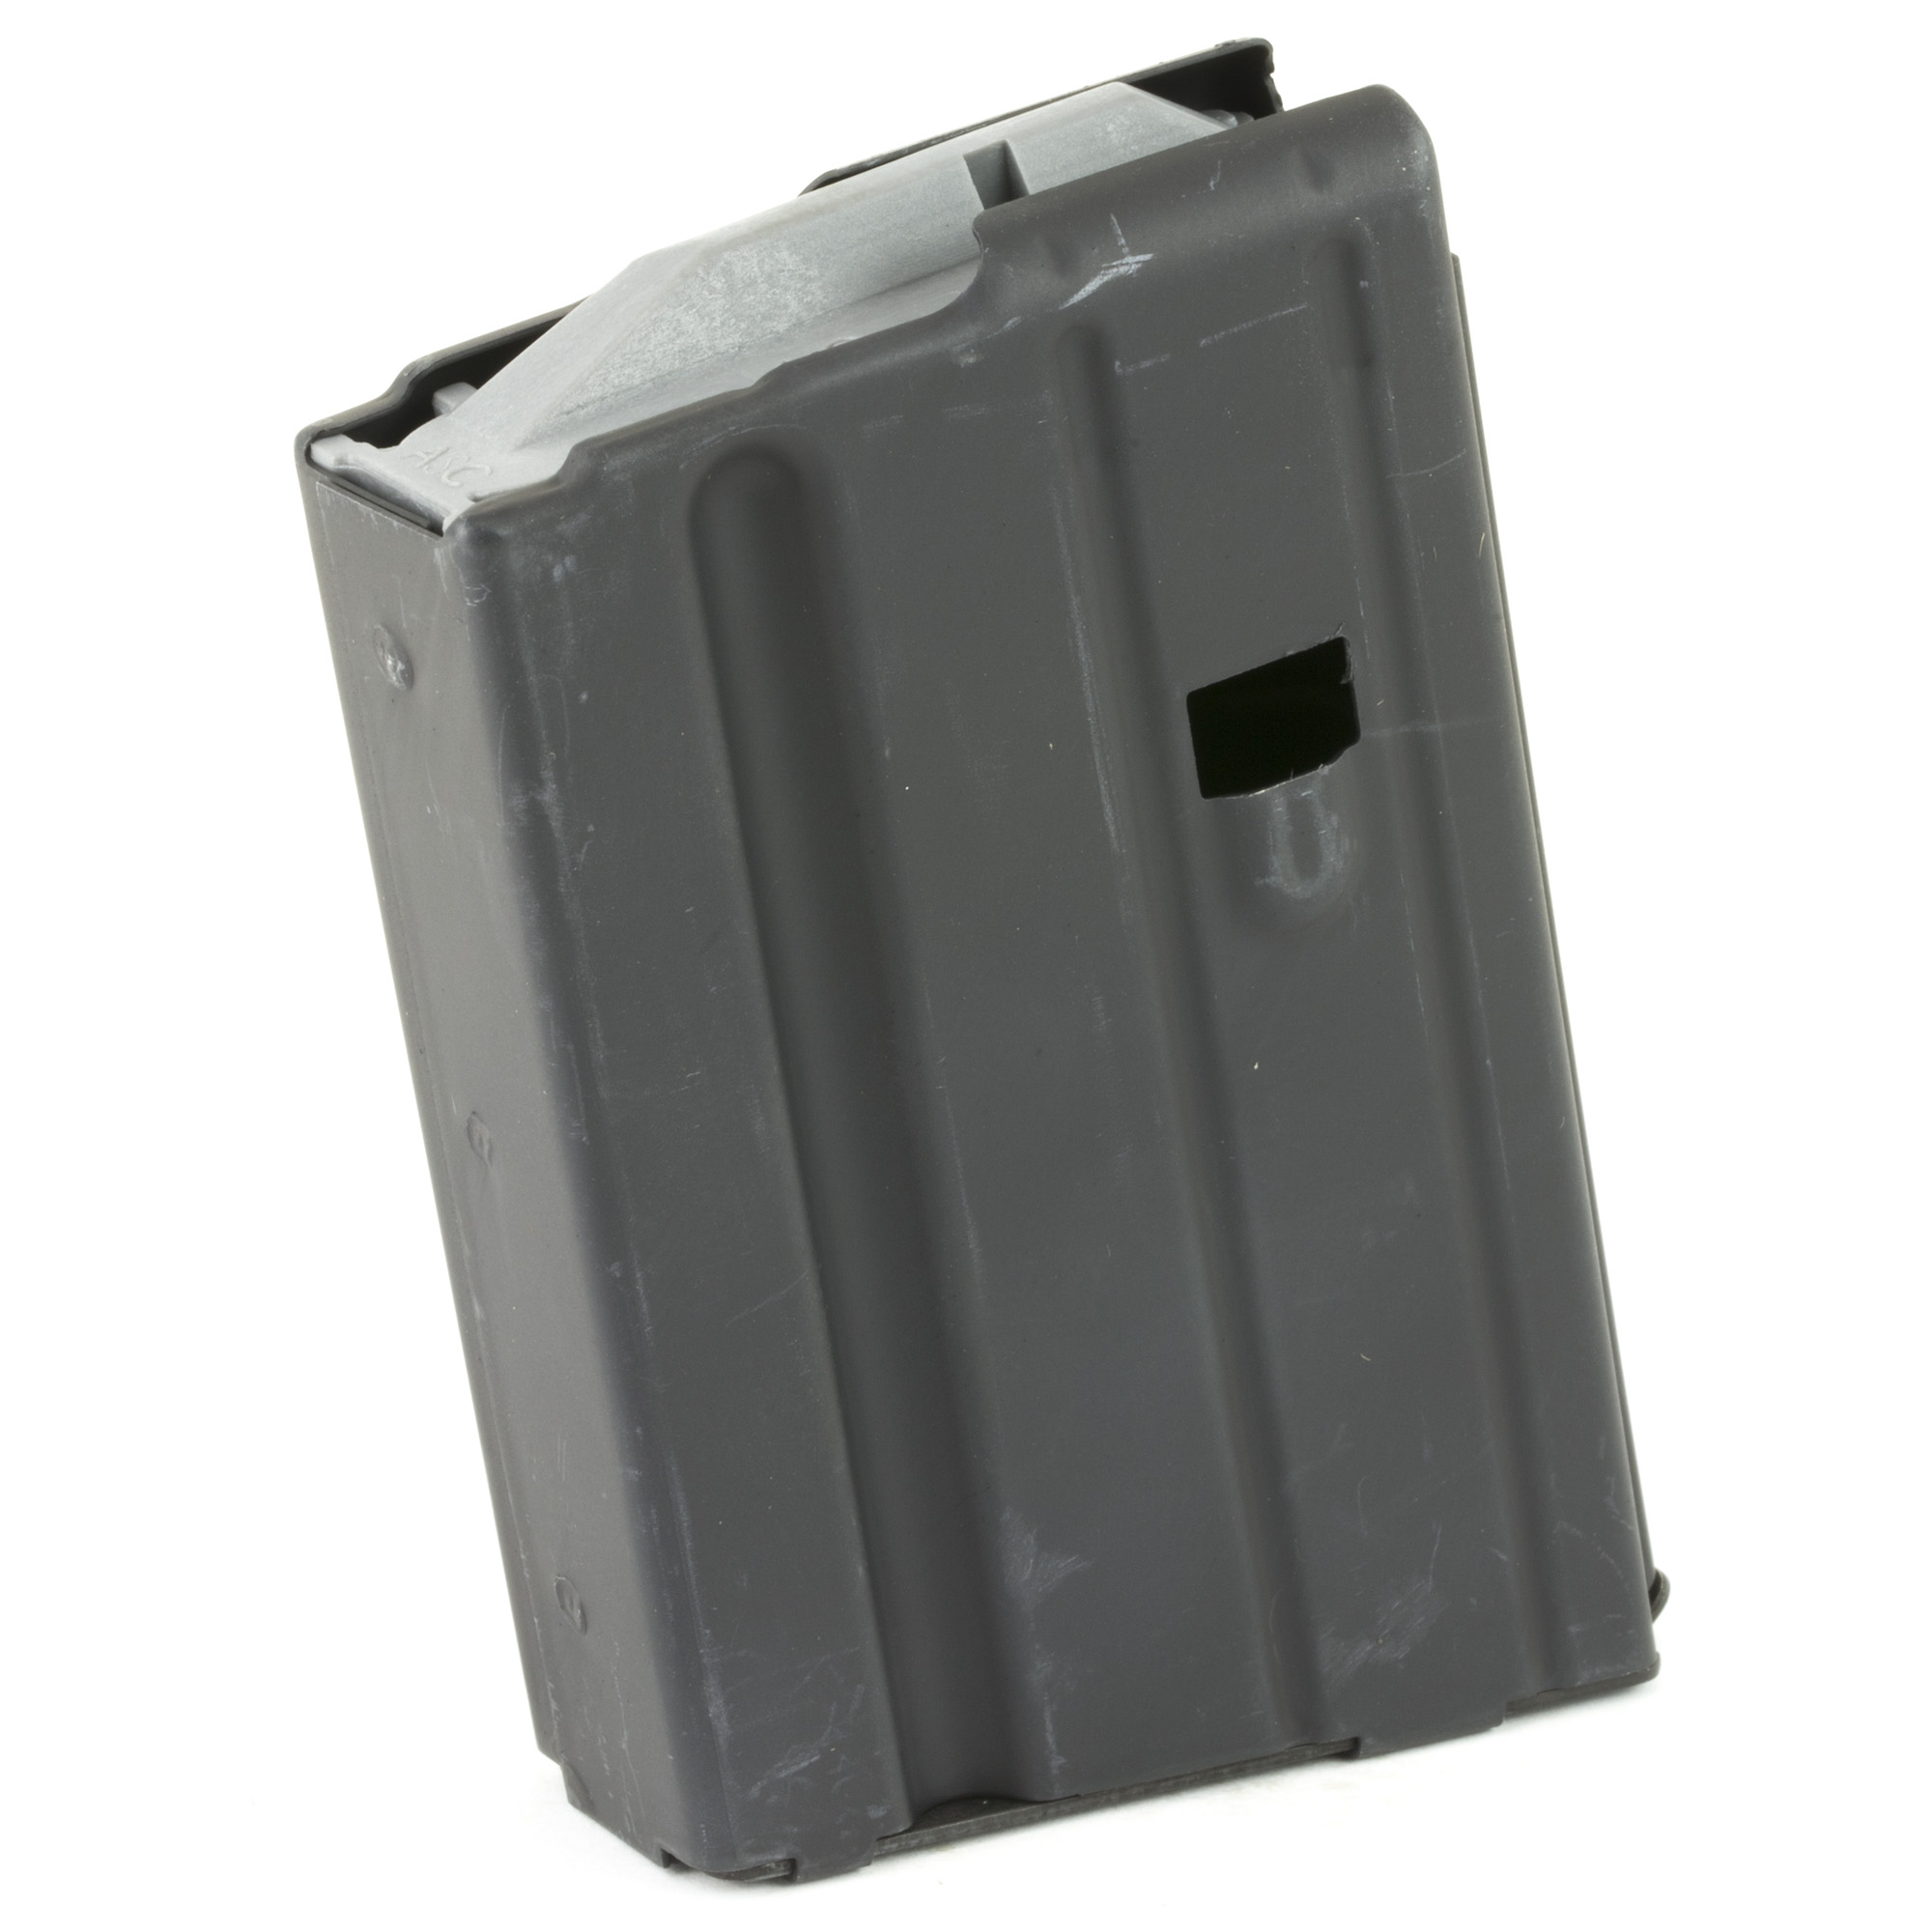 Mag Asc Ar6.8 10rd Sts Blk